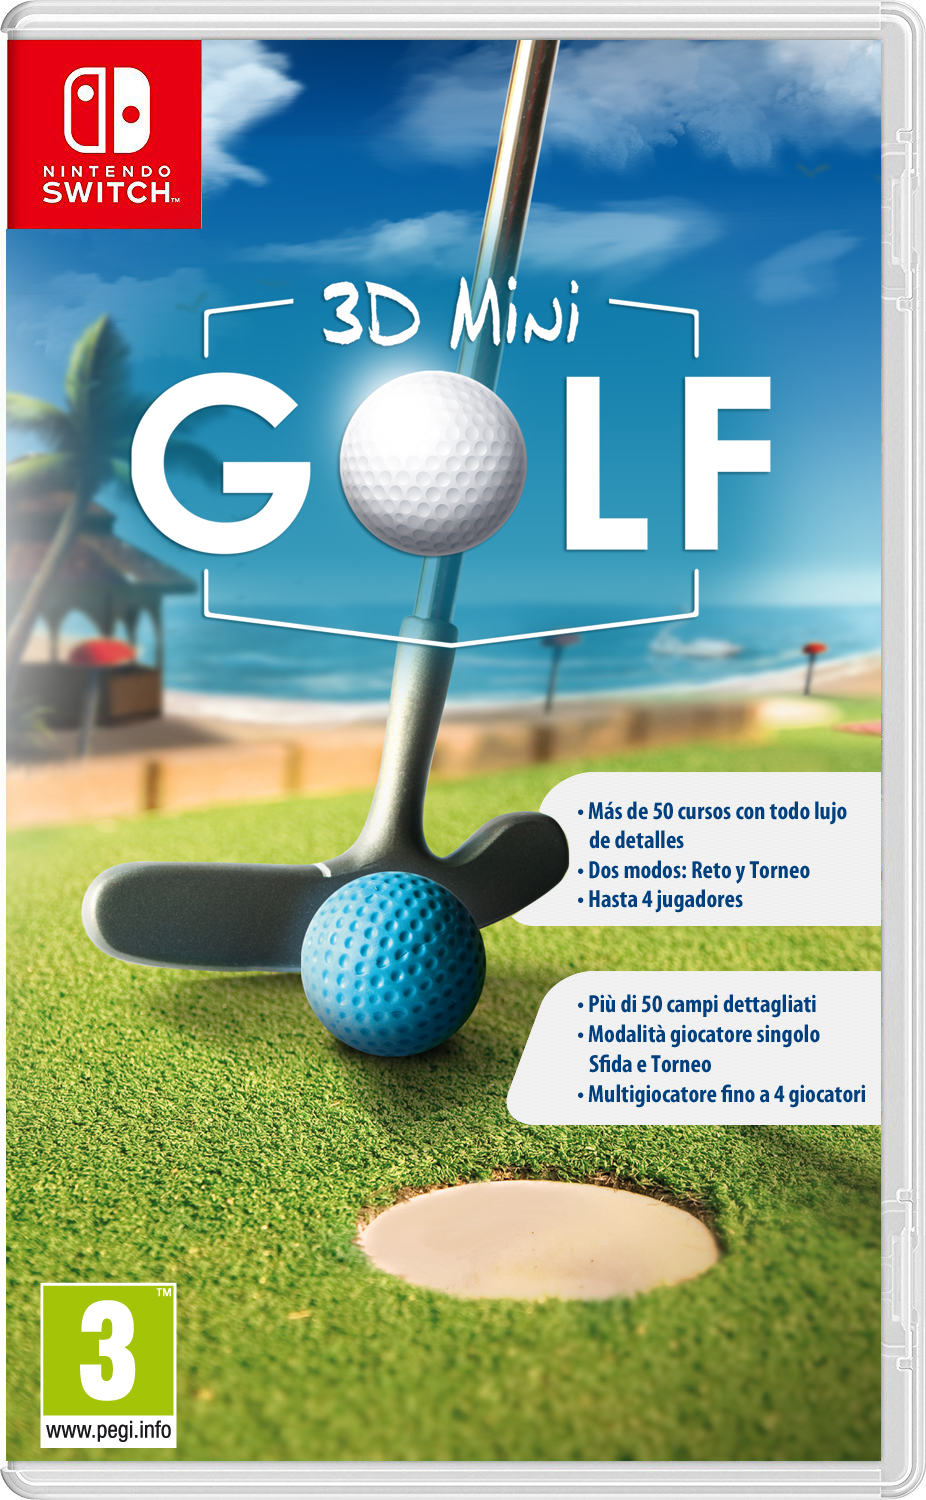 Se anuncia 3D Mini golf para Nintendo Switch